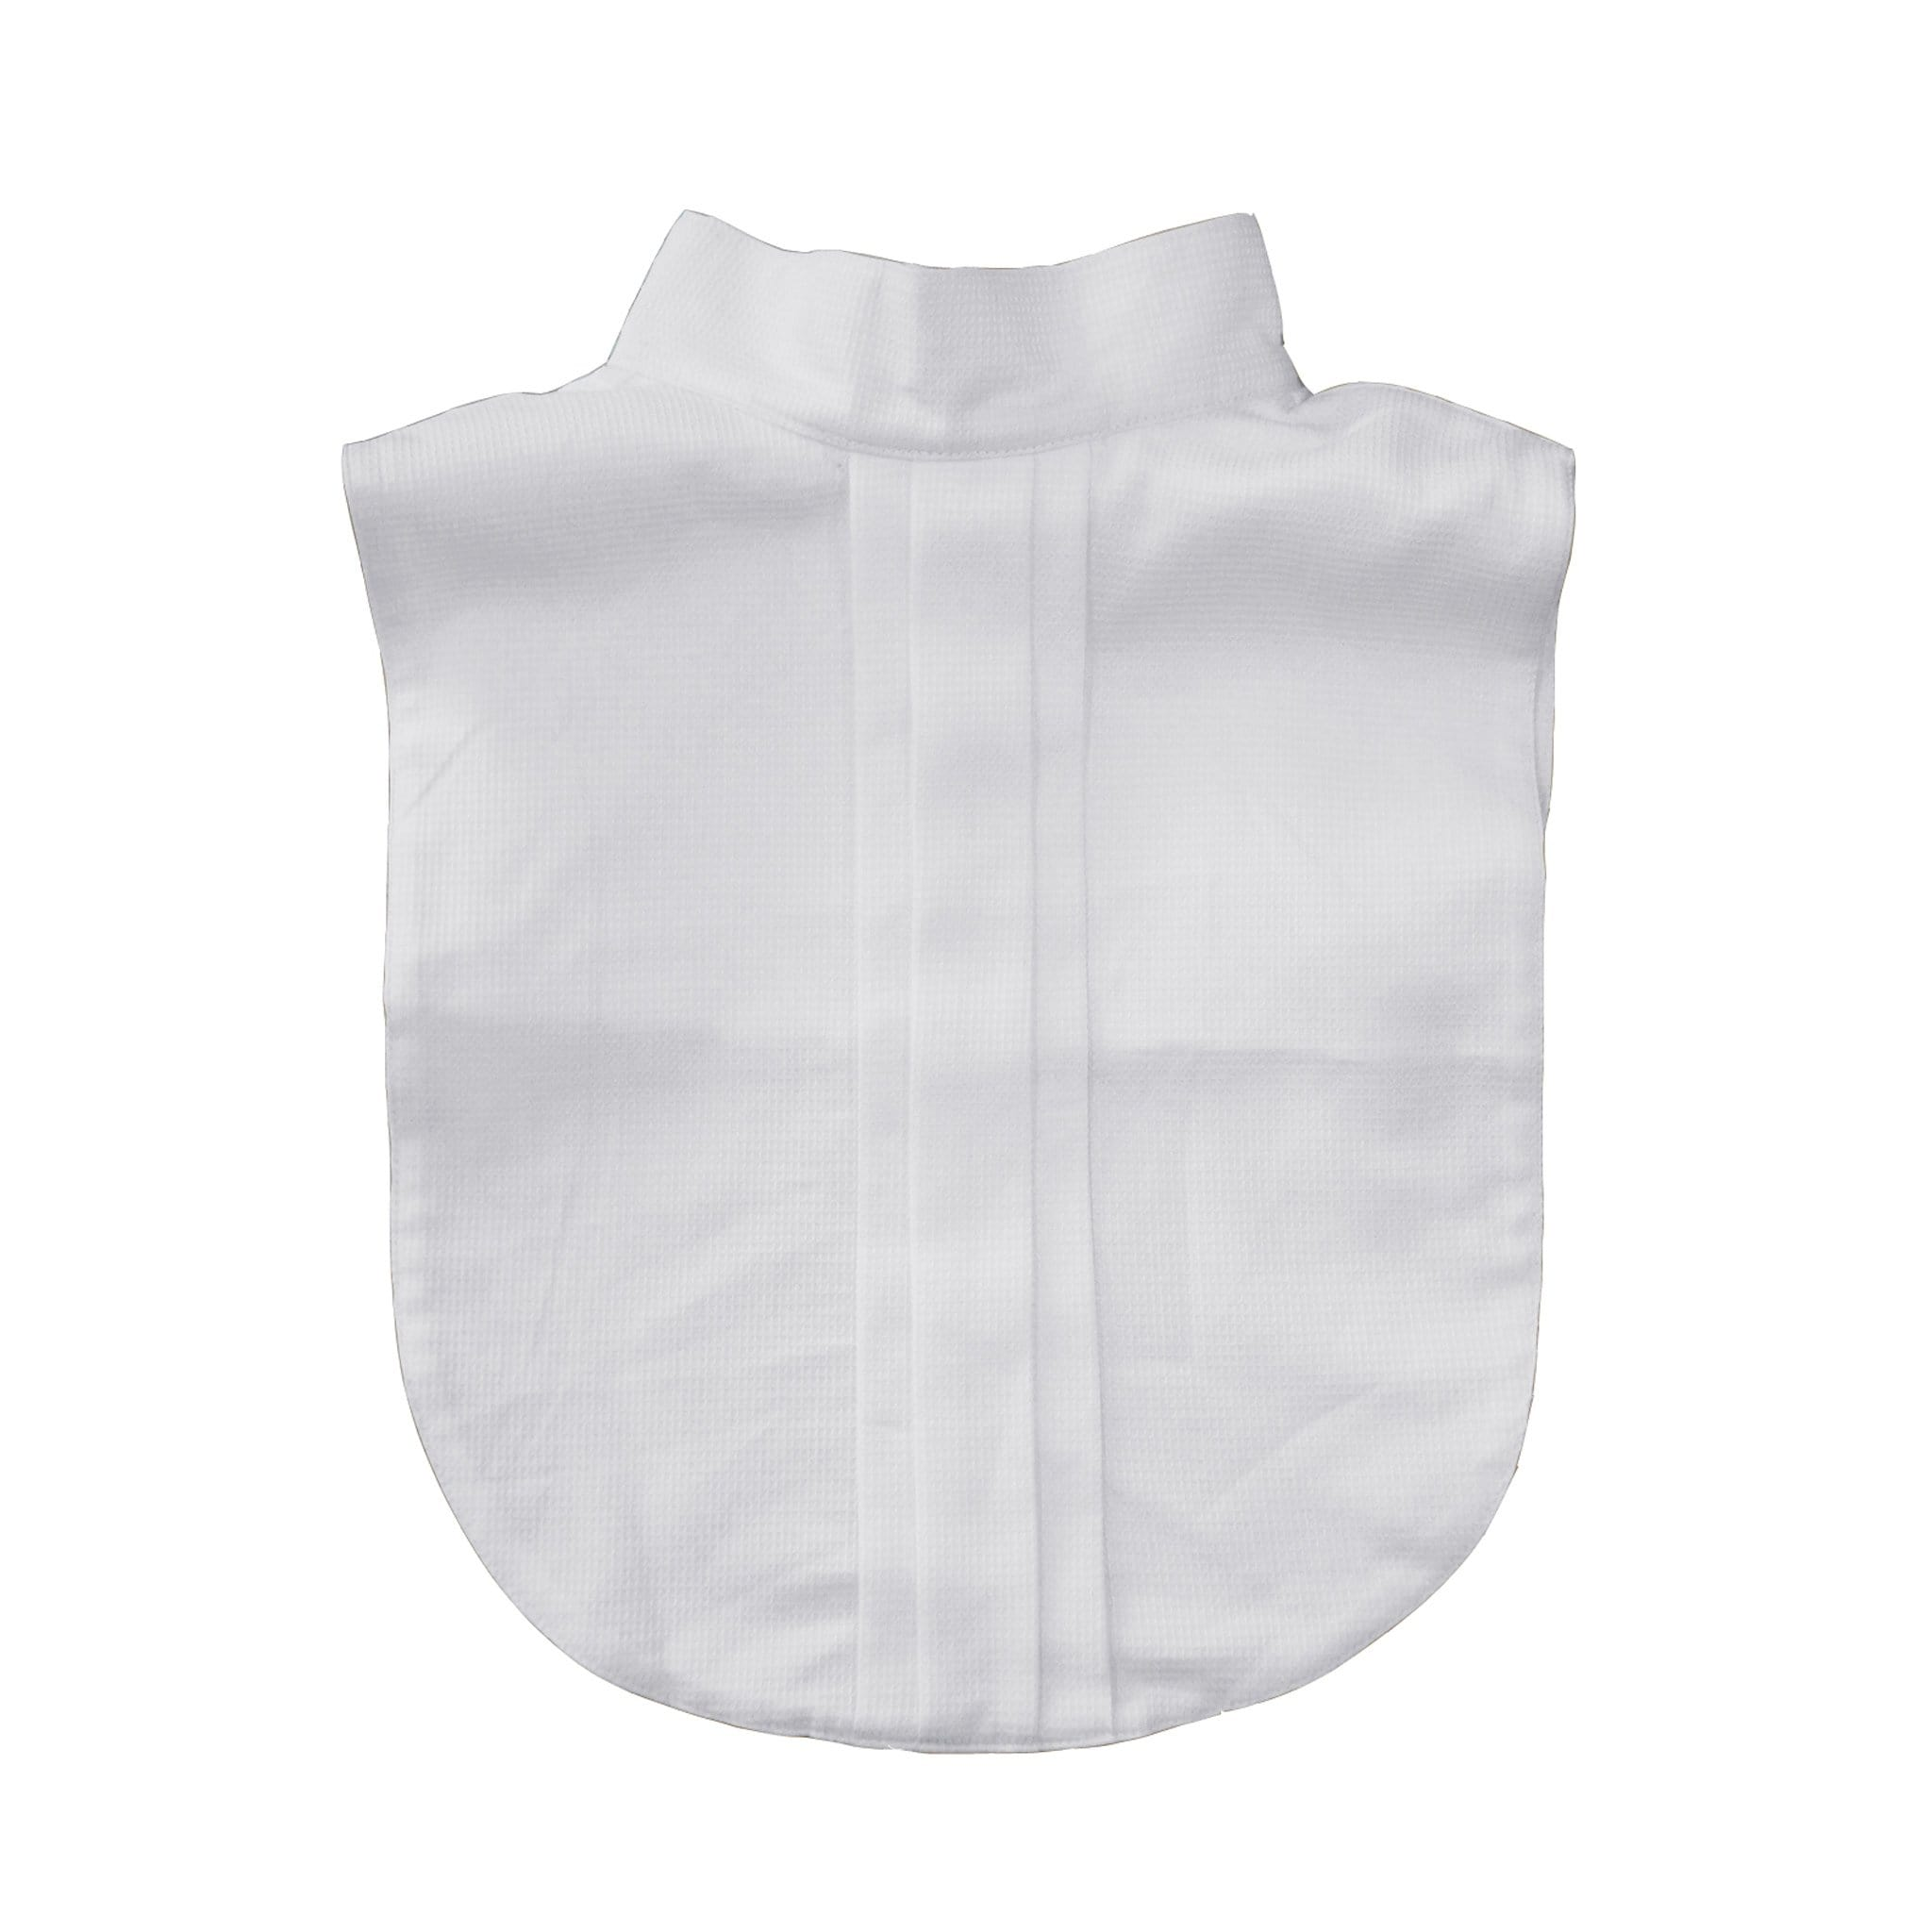 Dublin Stock Bib 30595U White